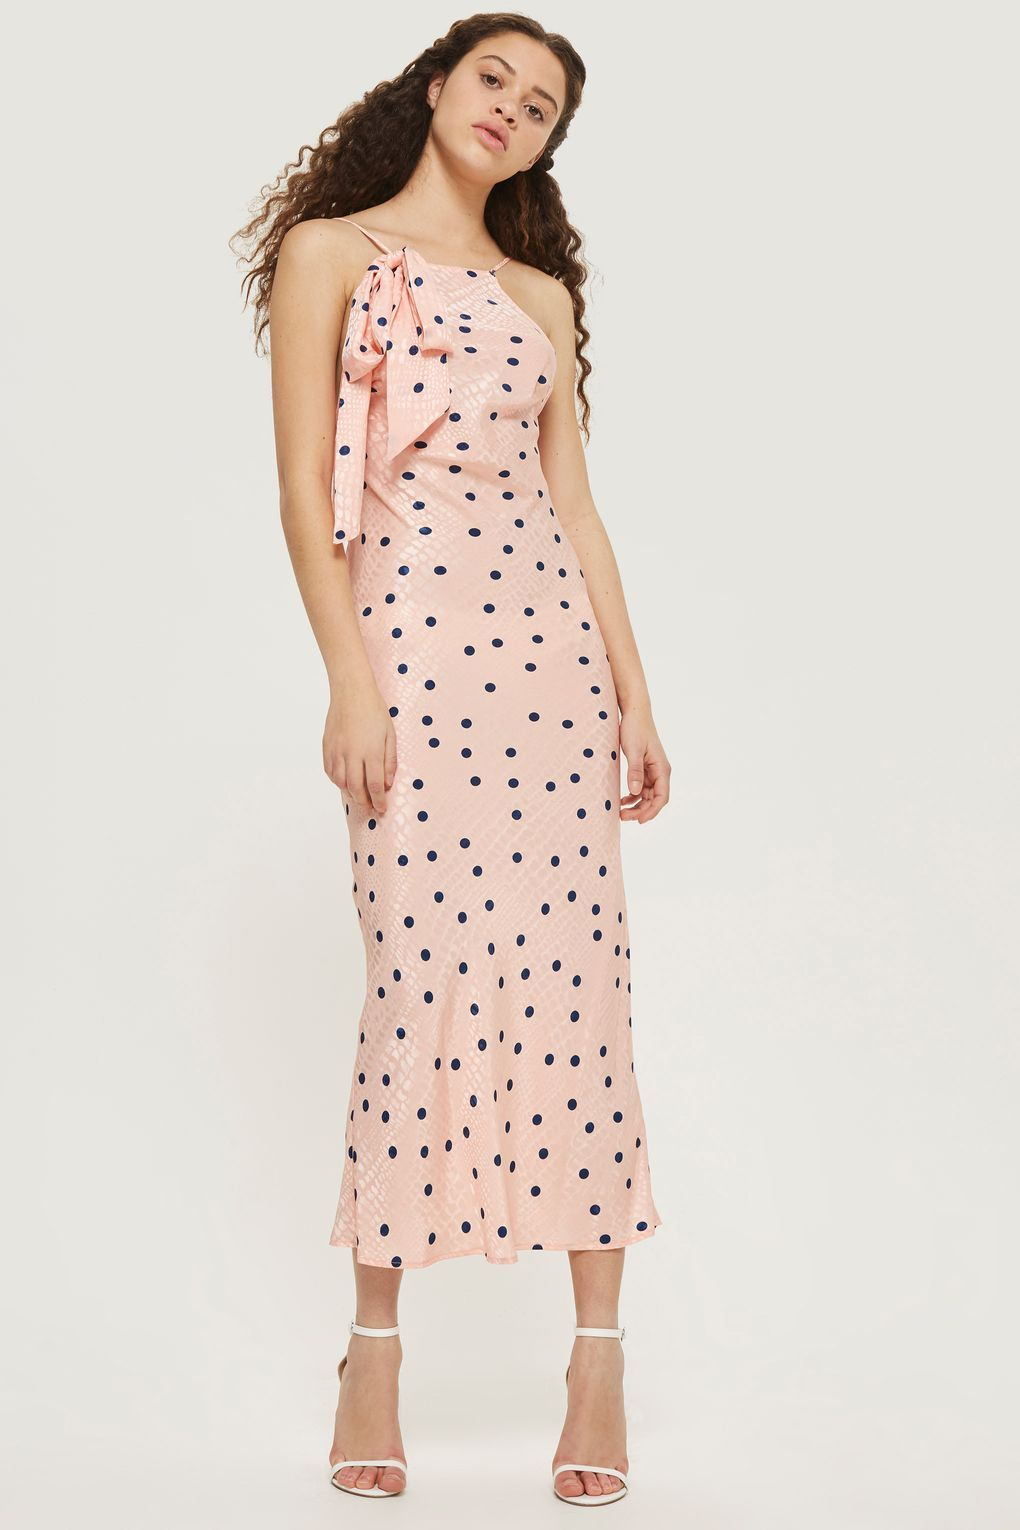 Wedding Guest Polka Dot Dress  39a2e6efe